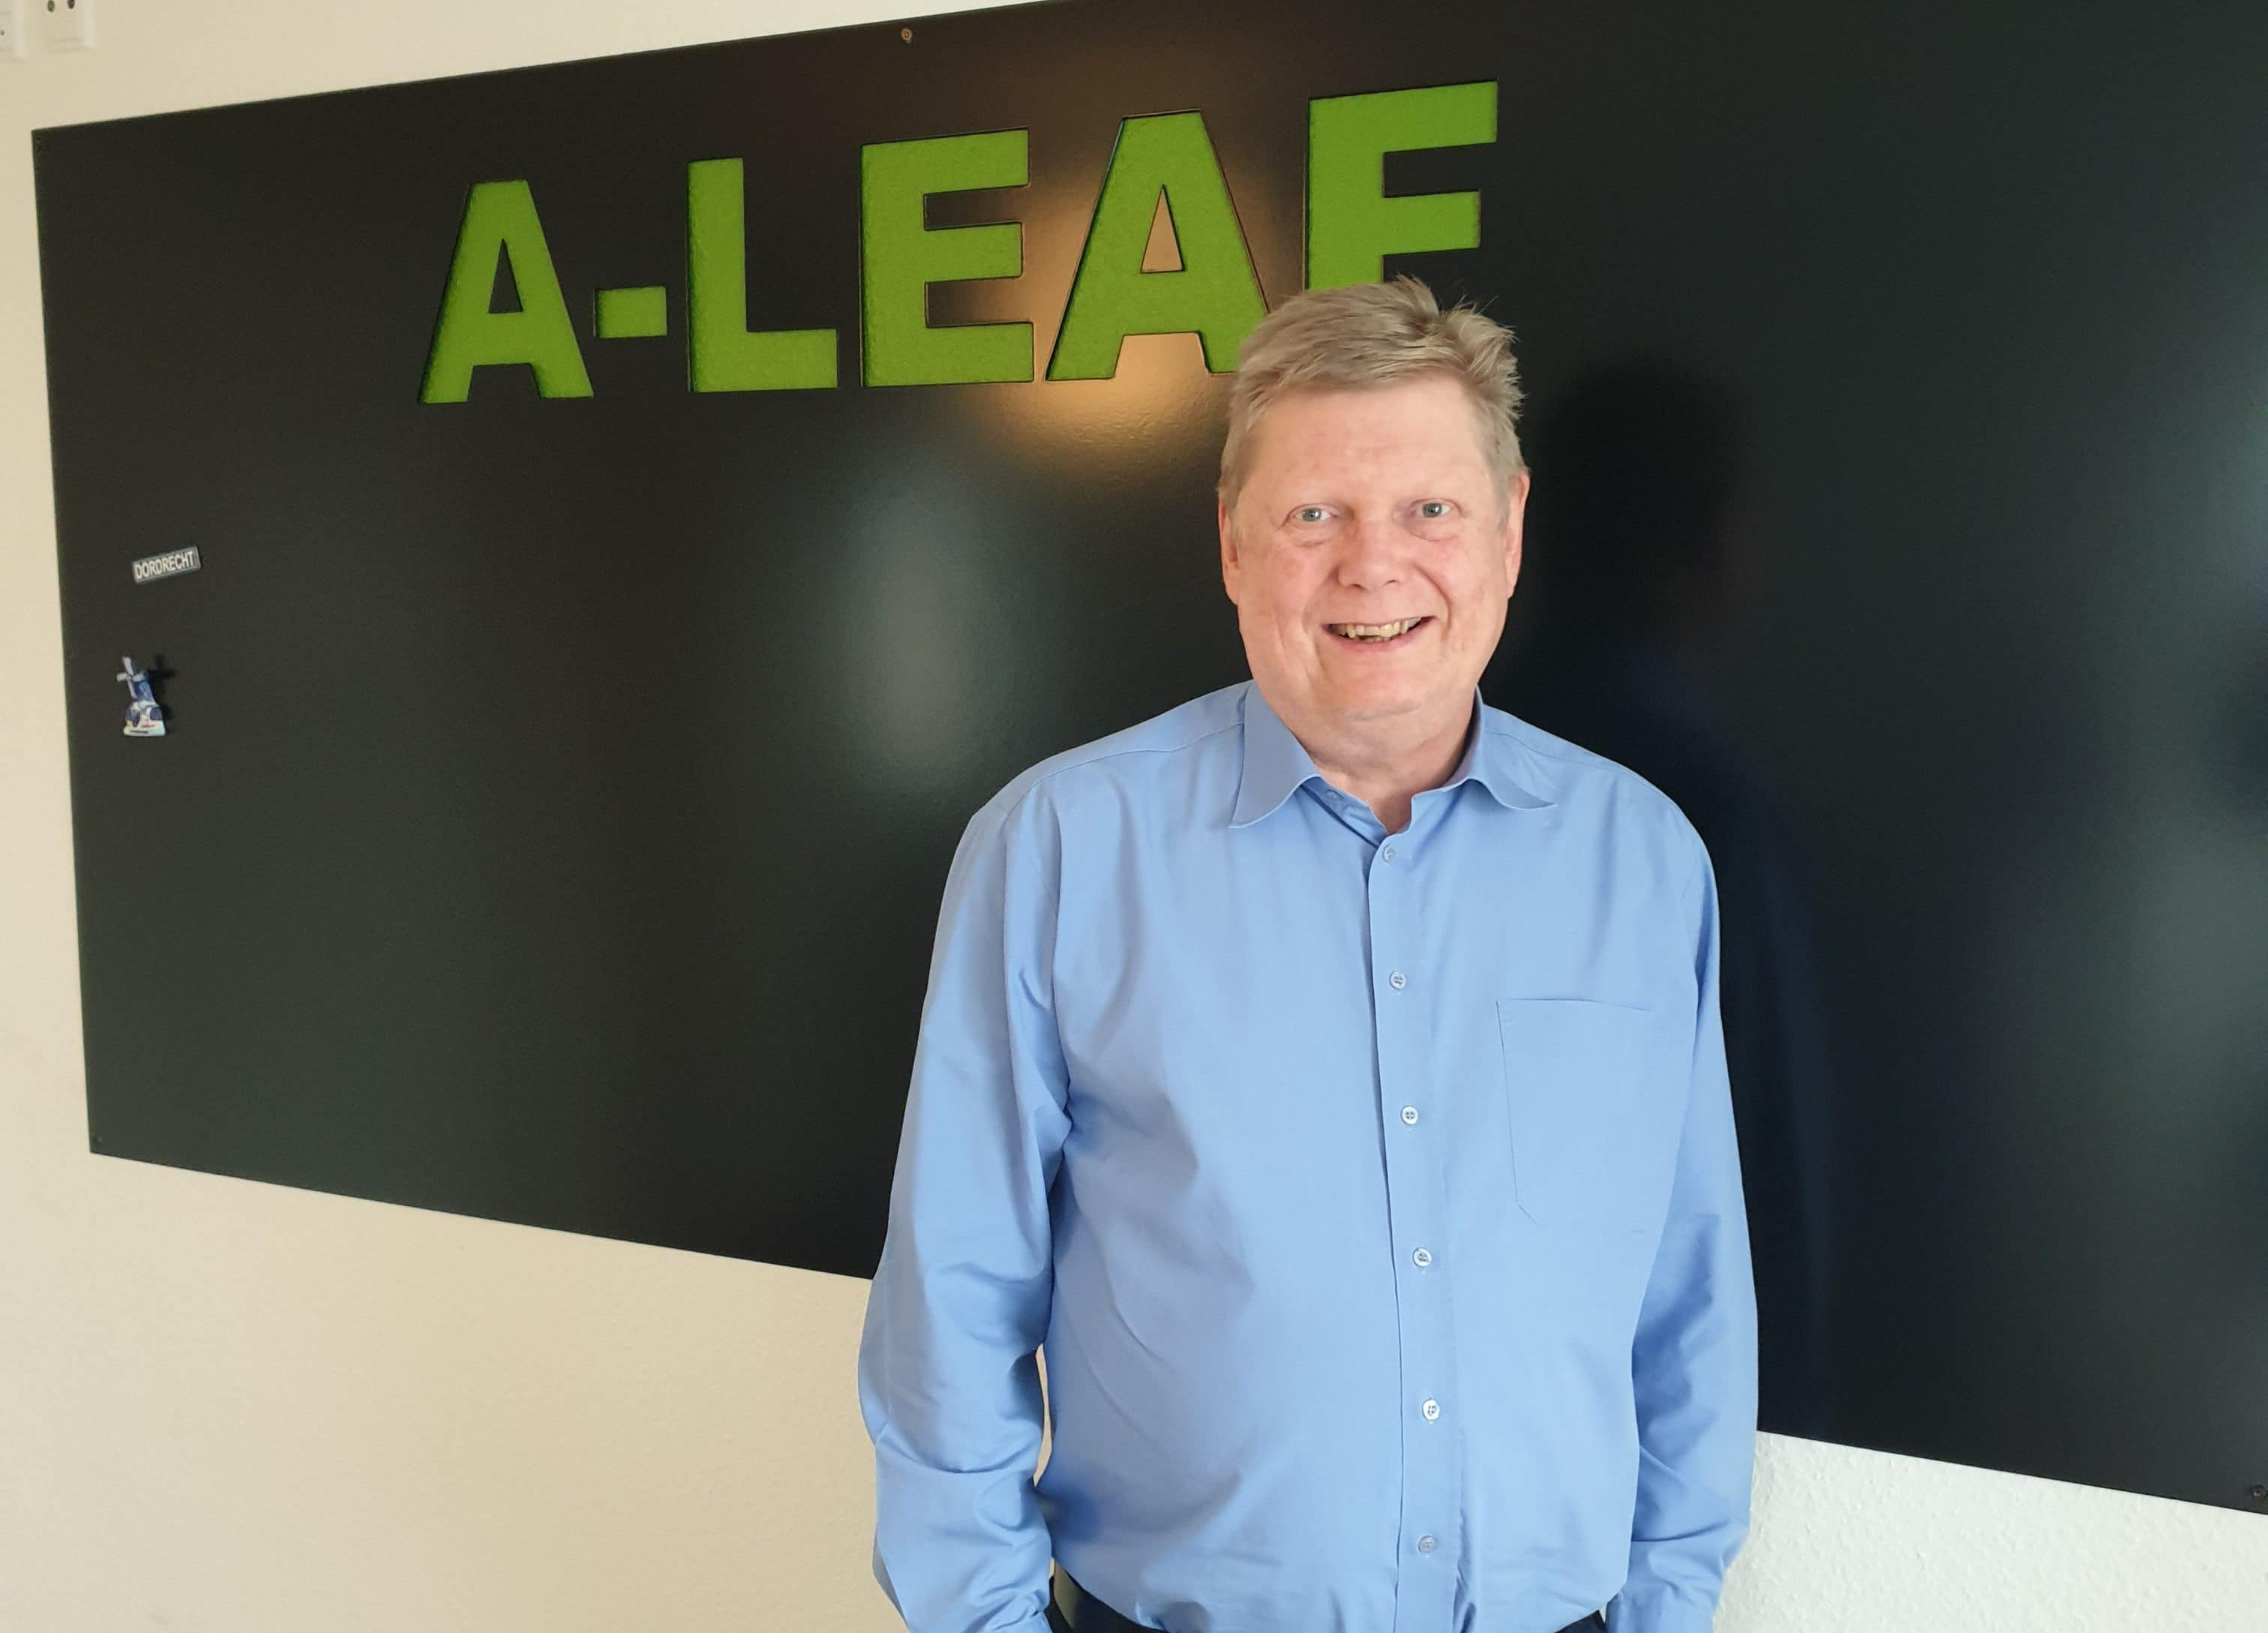 New Sales Manager to the A-LEAF Team!